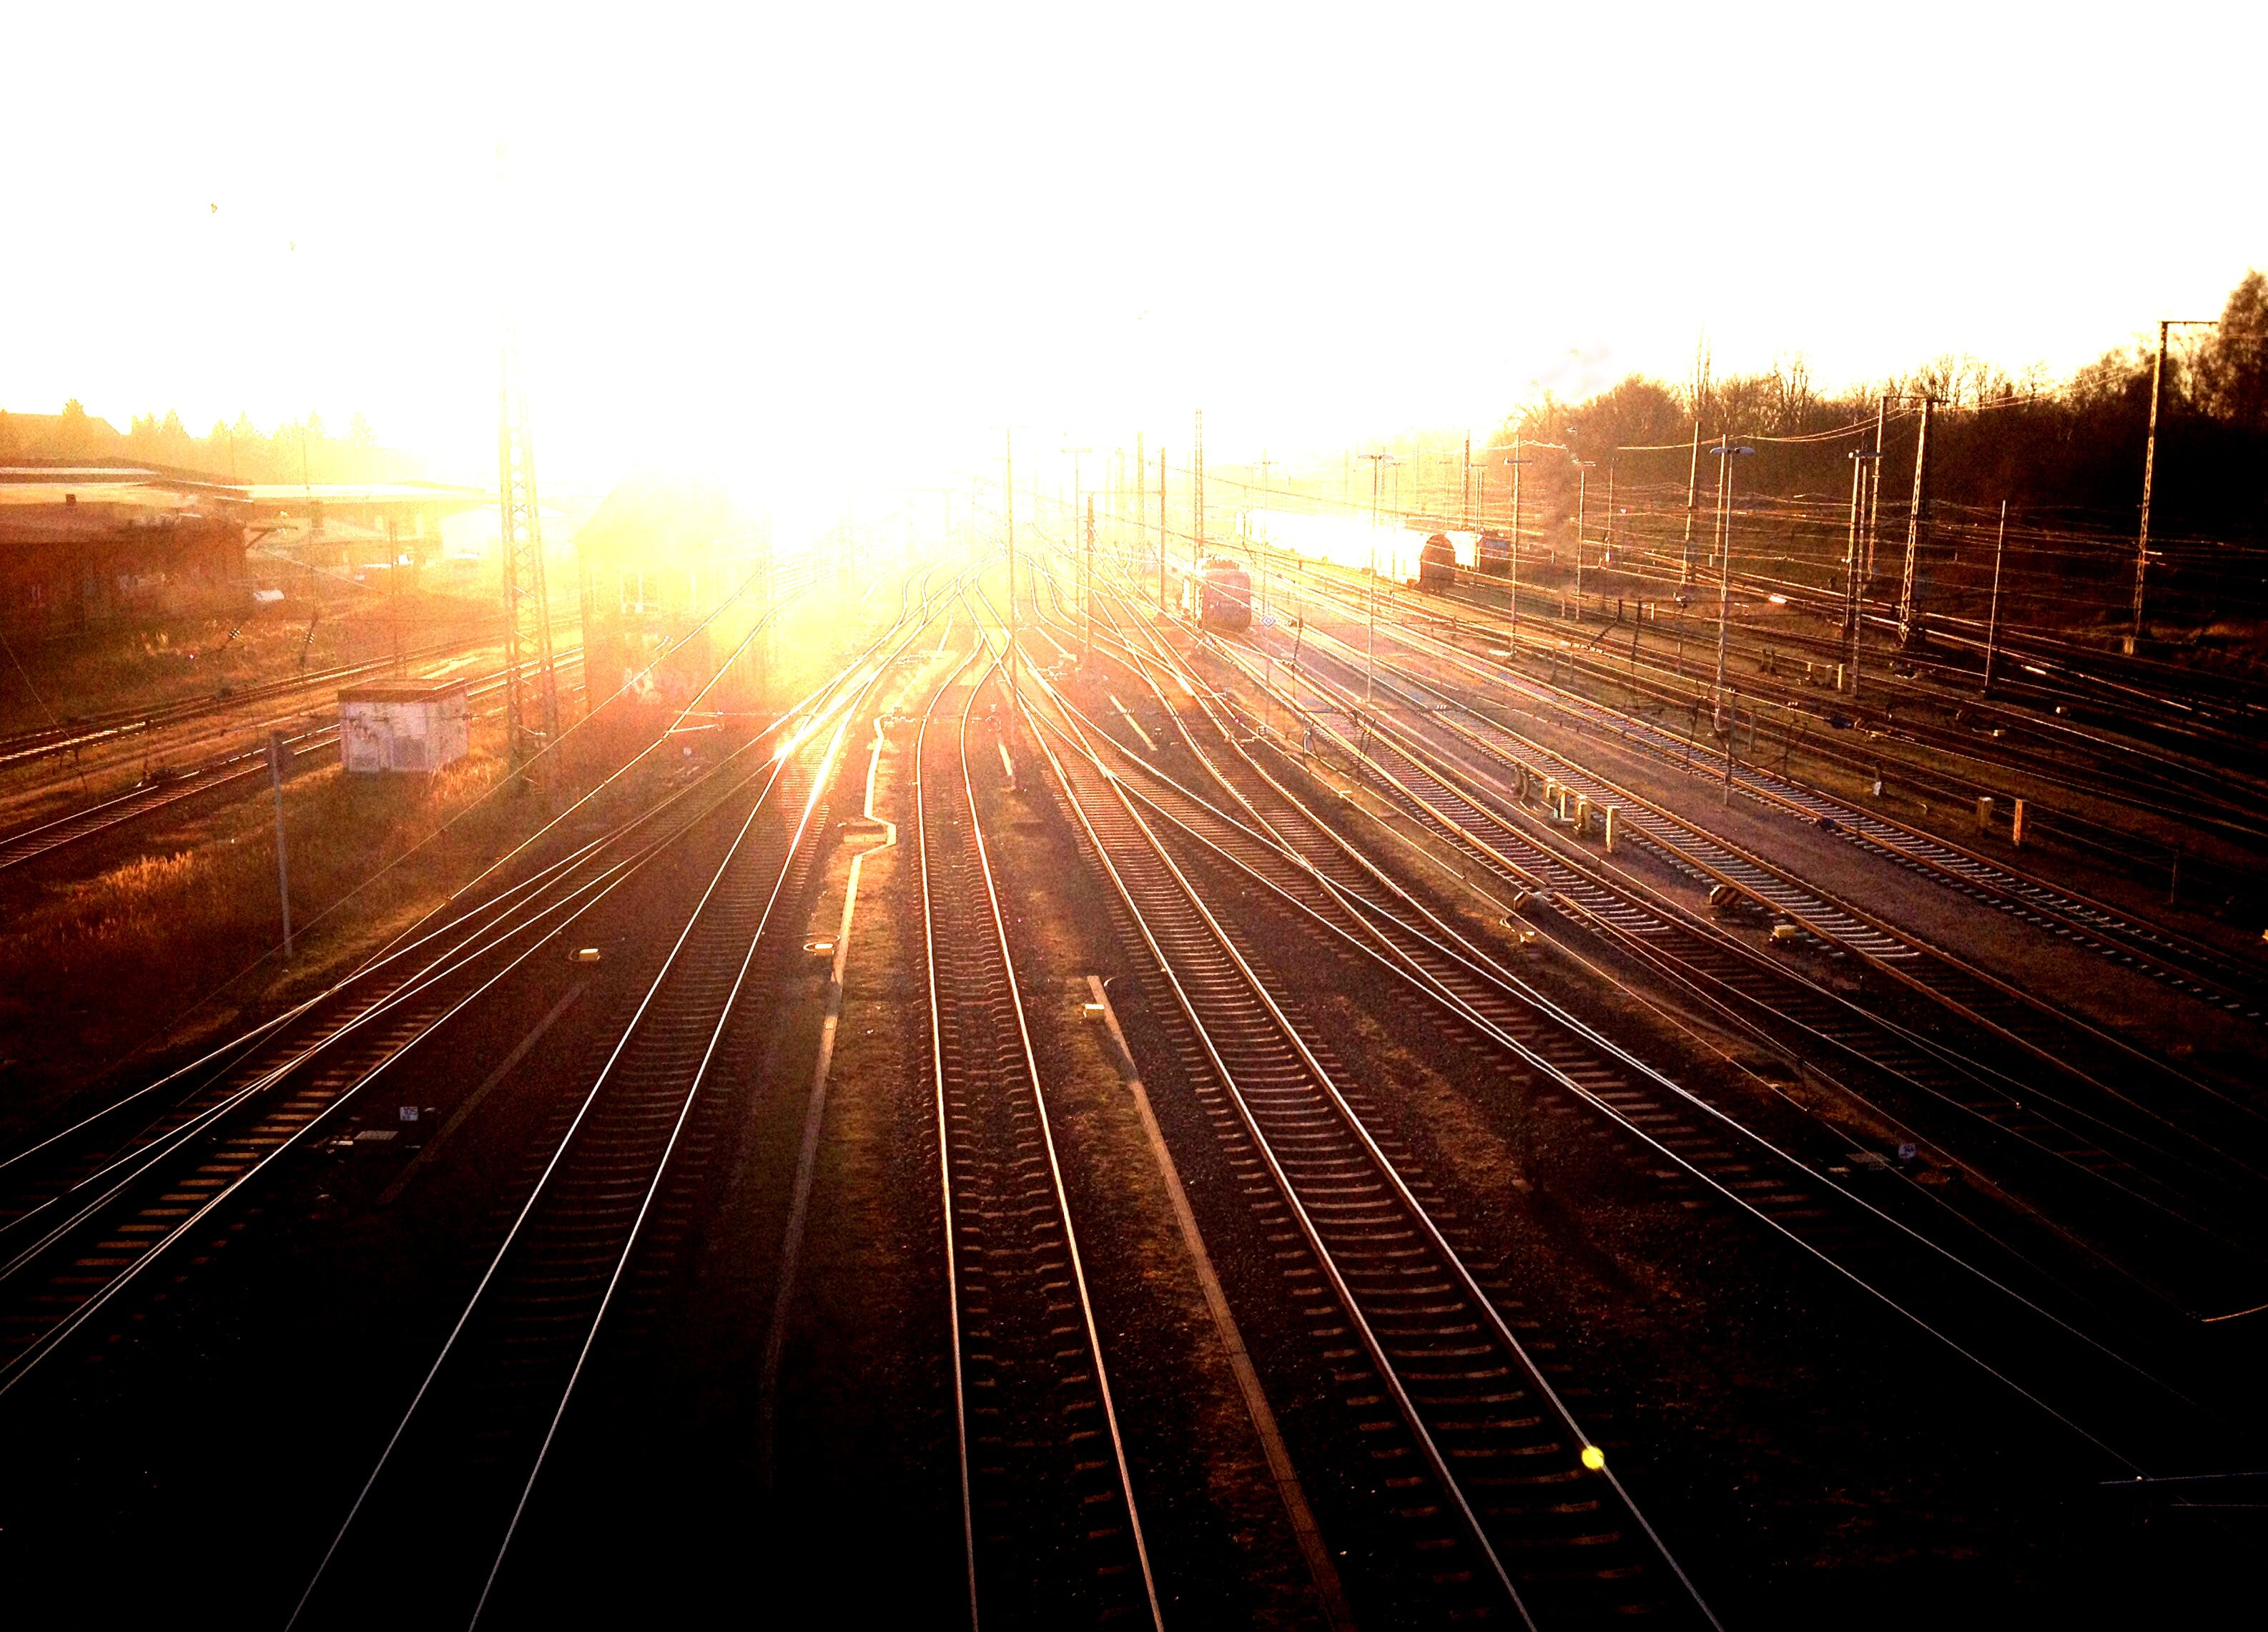 Free stock photo of luebeck, train station, train tracks